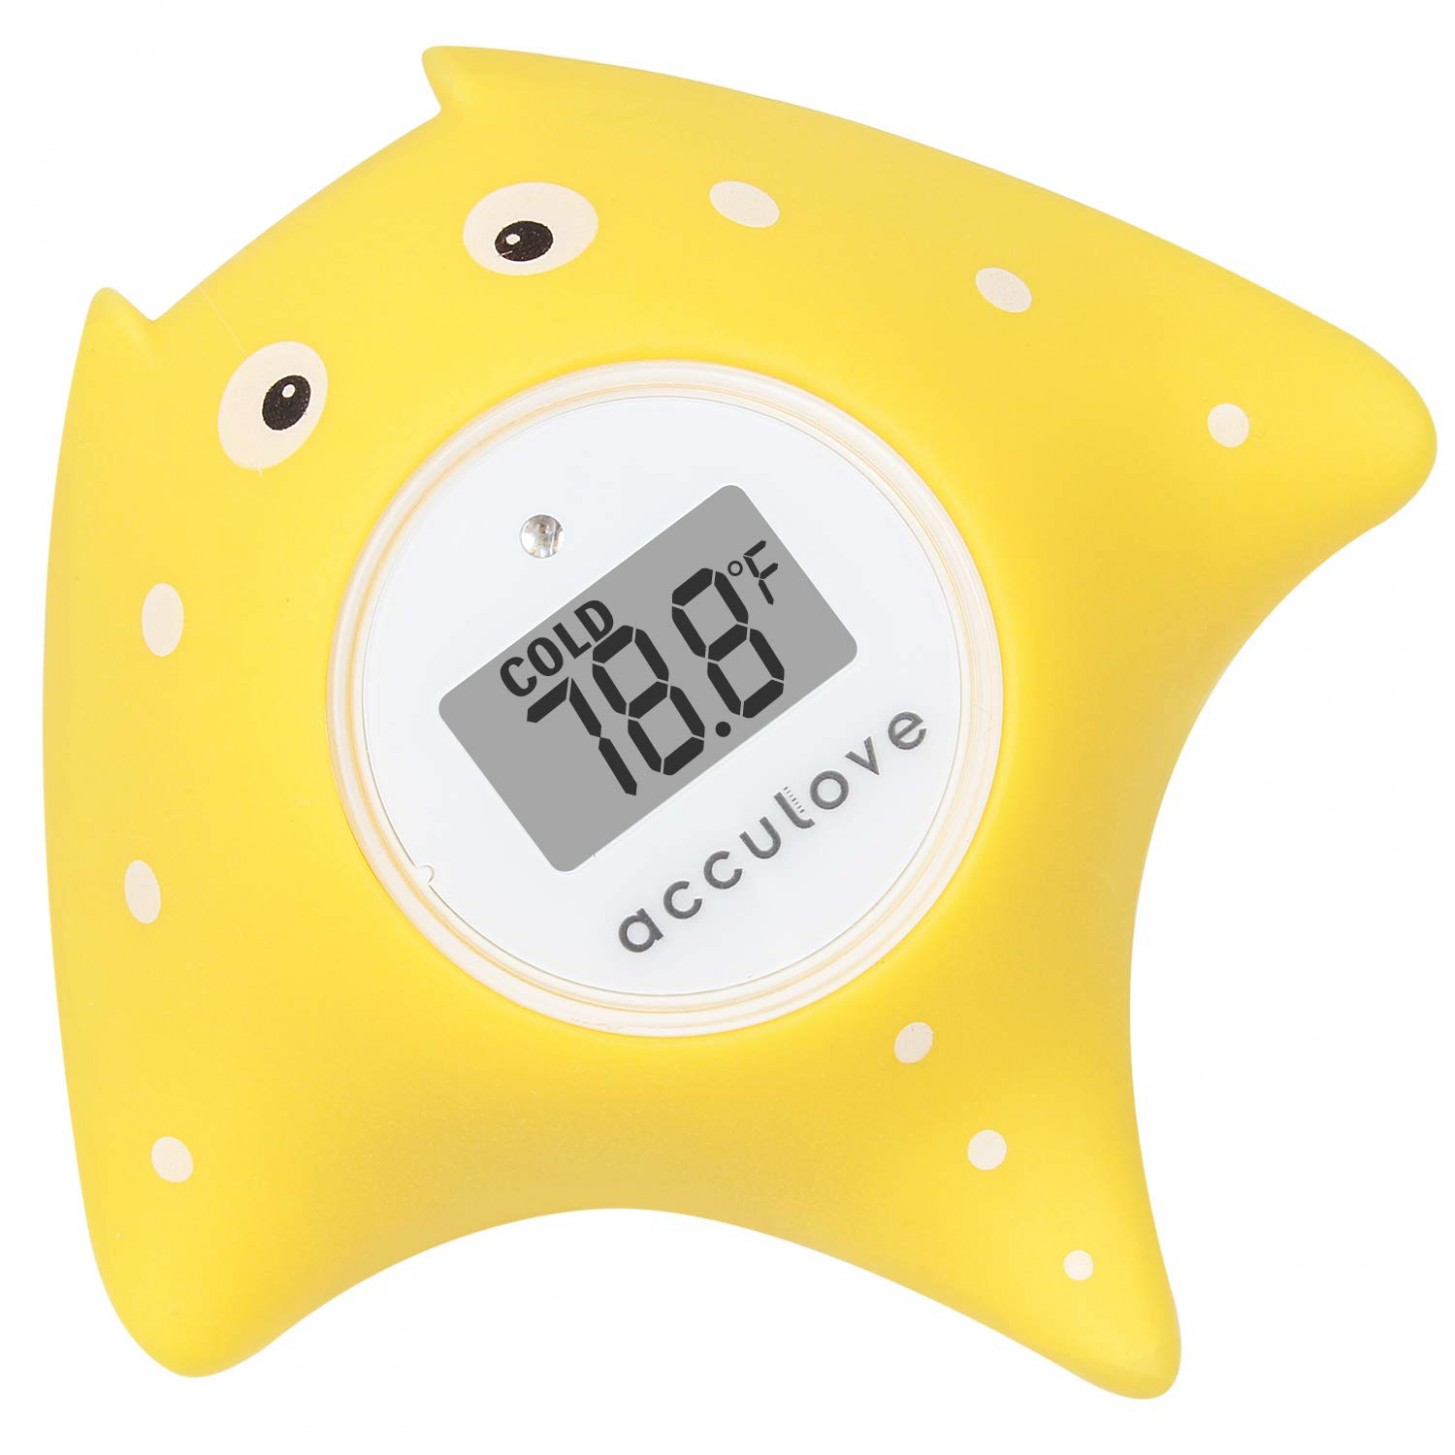 Acculove Baby Bath and Room Thermometer, Floating Bath Thermometer for  Bathtub and Swimming Pool, Yellow Fish Cartoon Outlook, Safe Toy for  Babies,  - Baby Room And Bath Thermometer